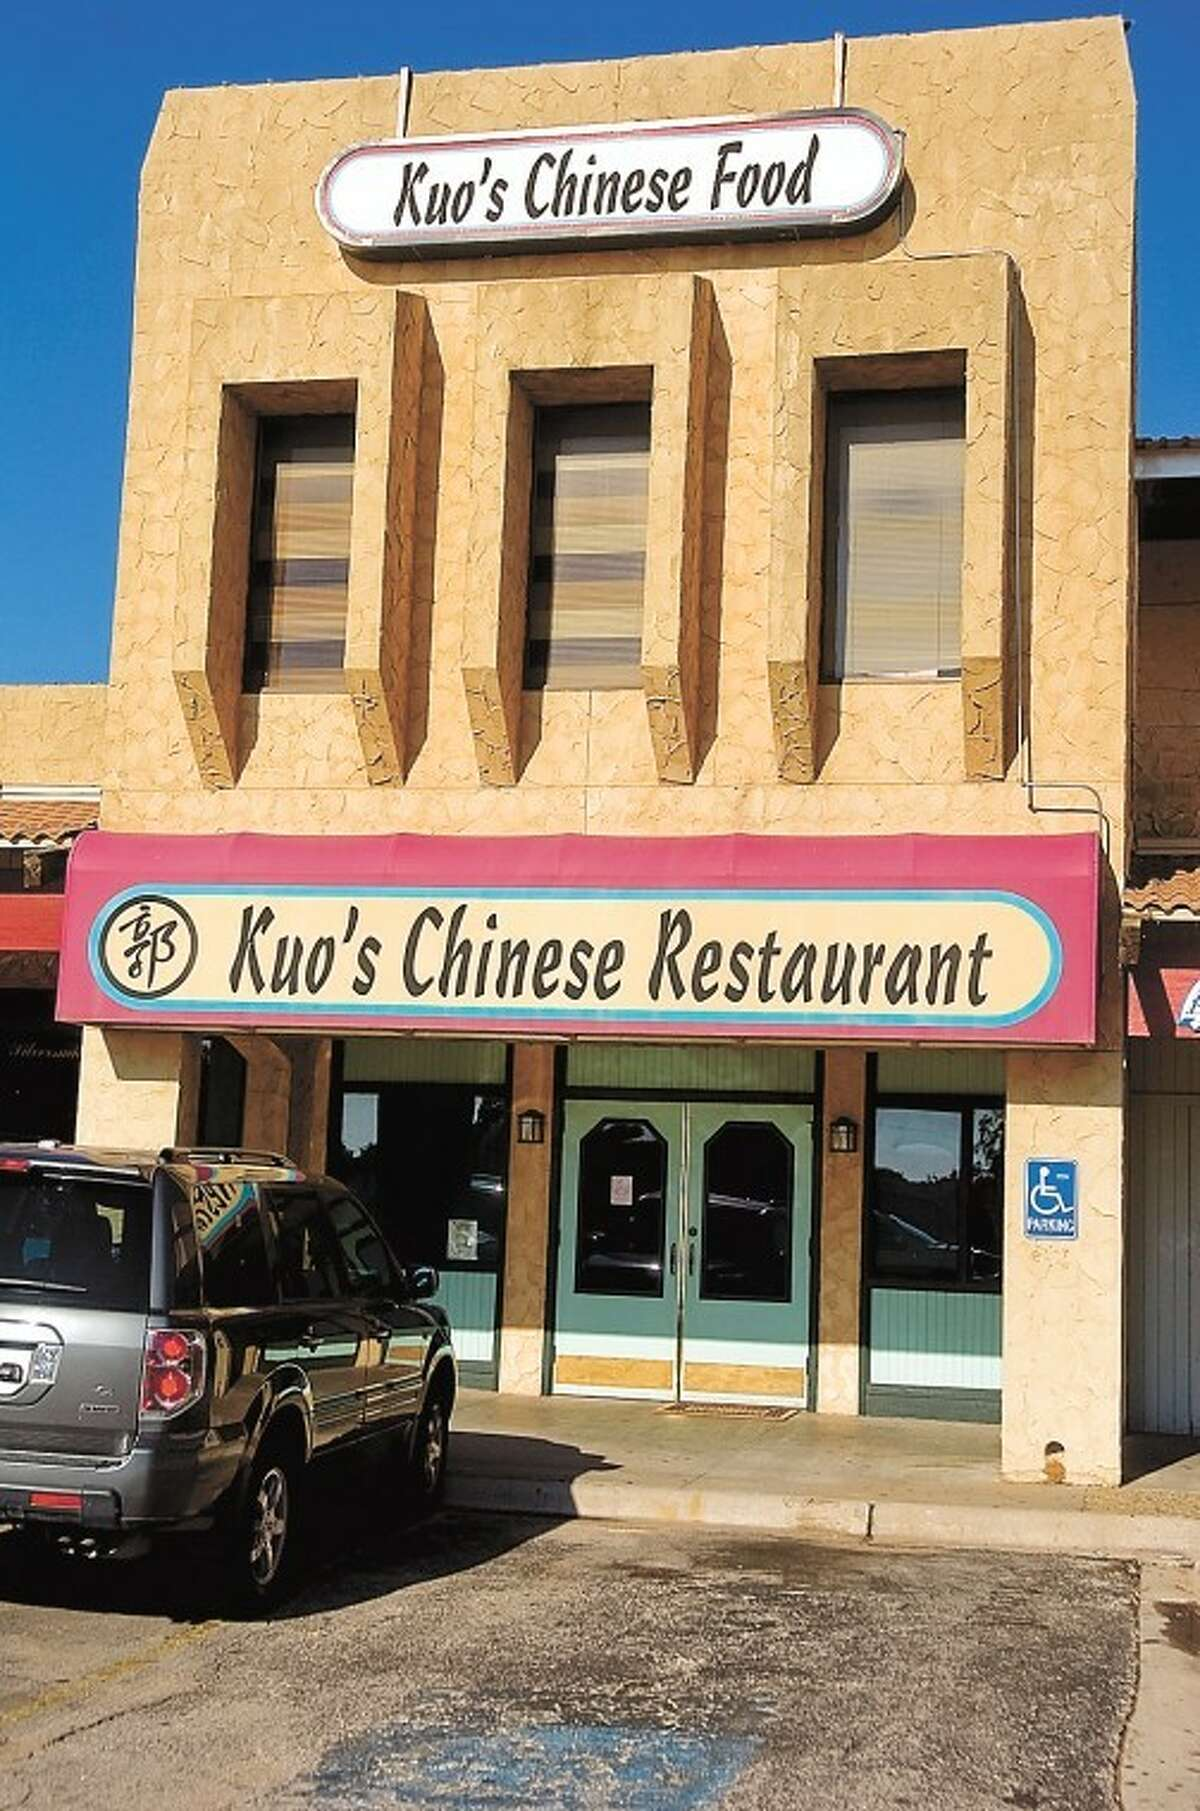 Kuo's Chinese Restaurant, 3303 N. Midkiff Road, received unanimous approval of its request for a Specific Use Designation with Term for the sale of all alcoholic beverages for on-premises consumption in a restaurant.